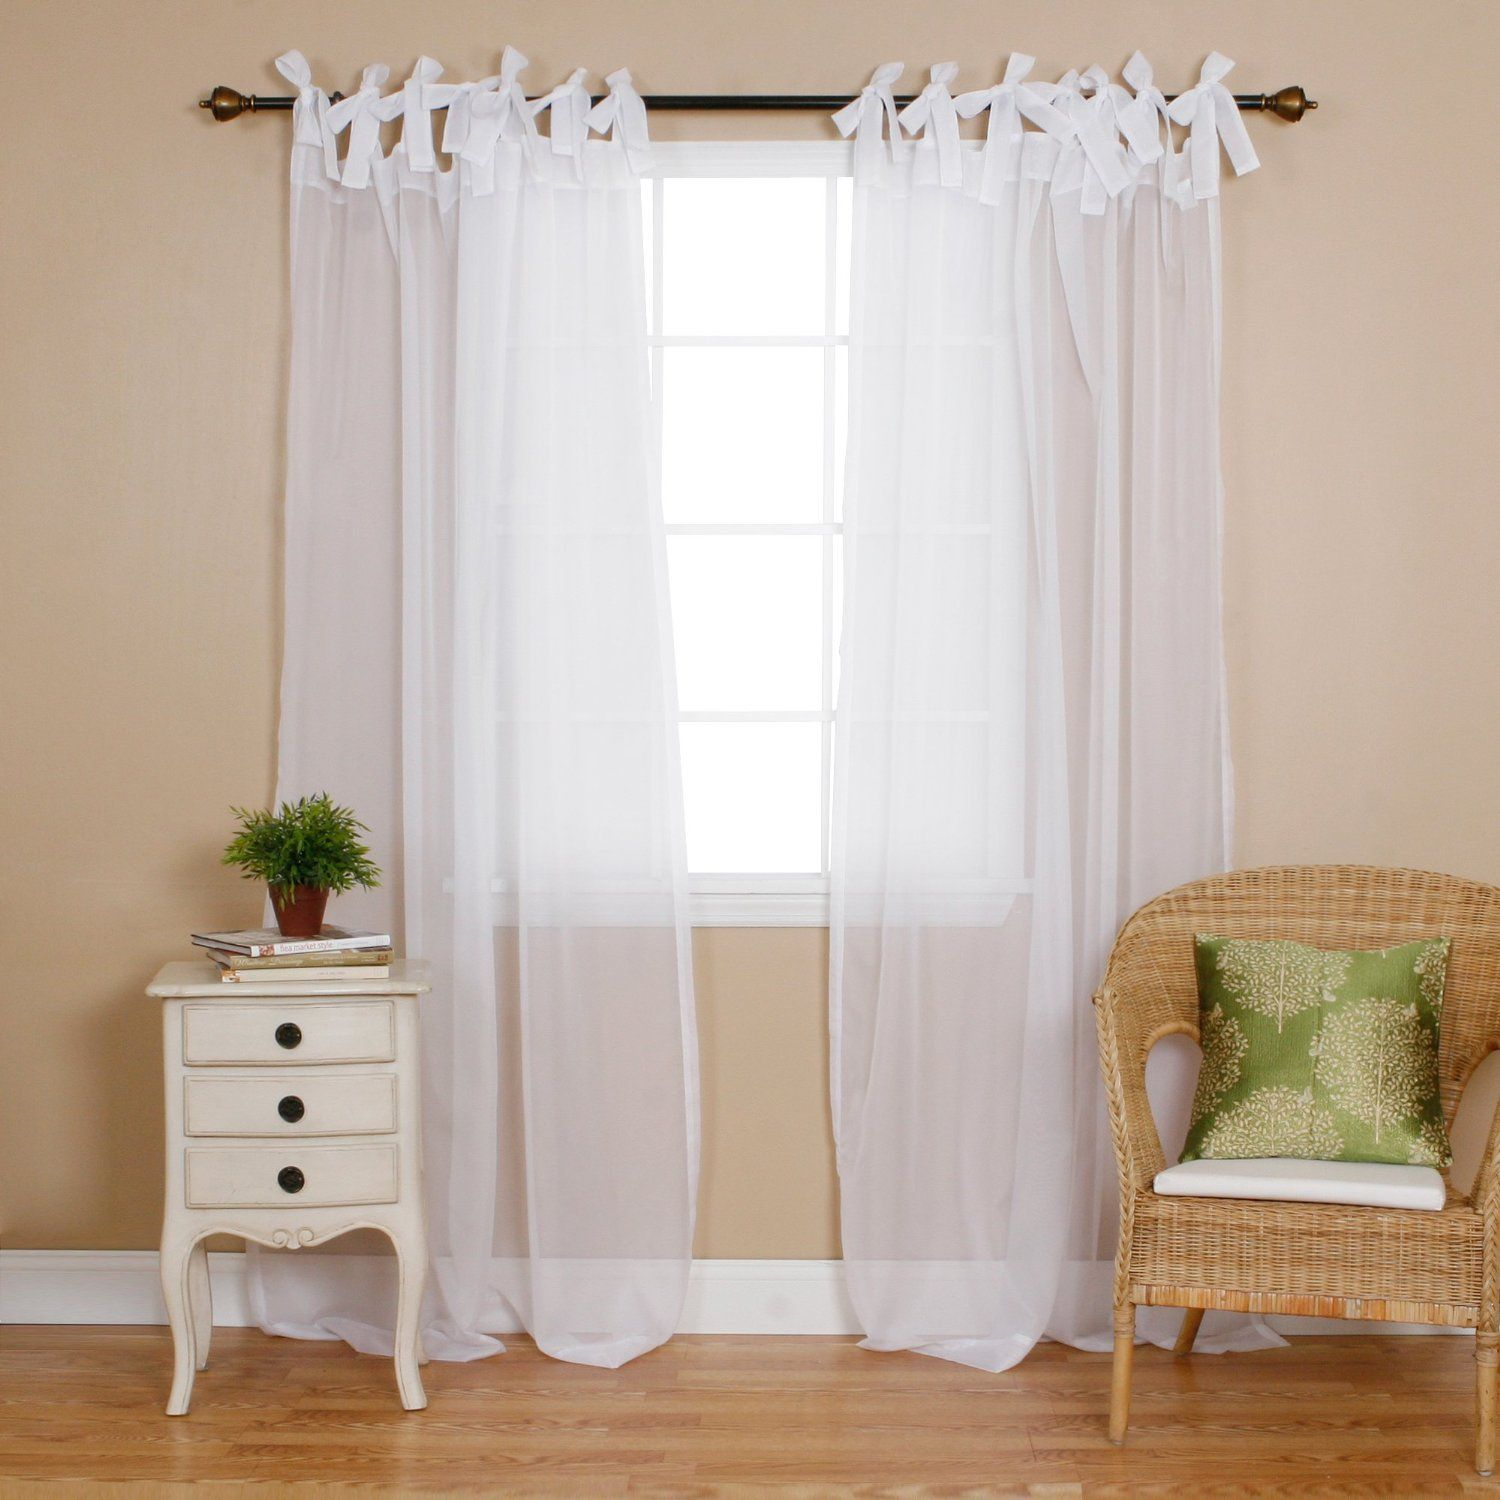 curtain and semi grommet white of size for decor popular homes picture better panel panels design tips curtains outdoor gardens alluring full sheer